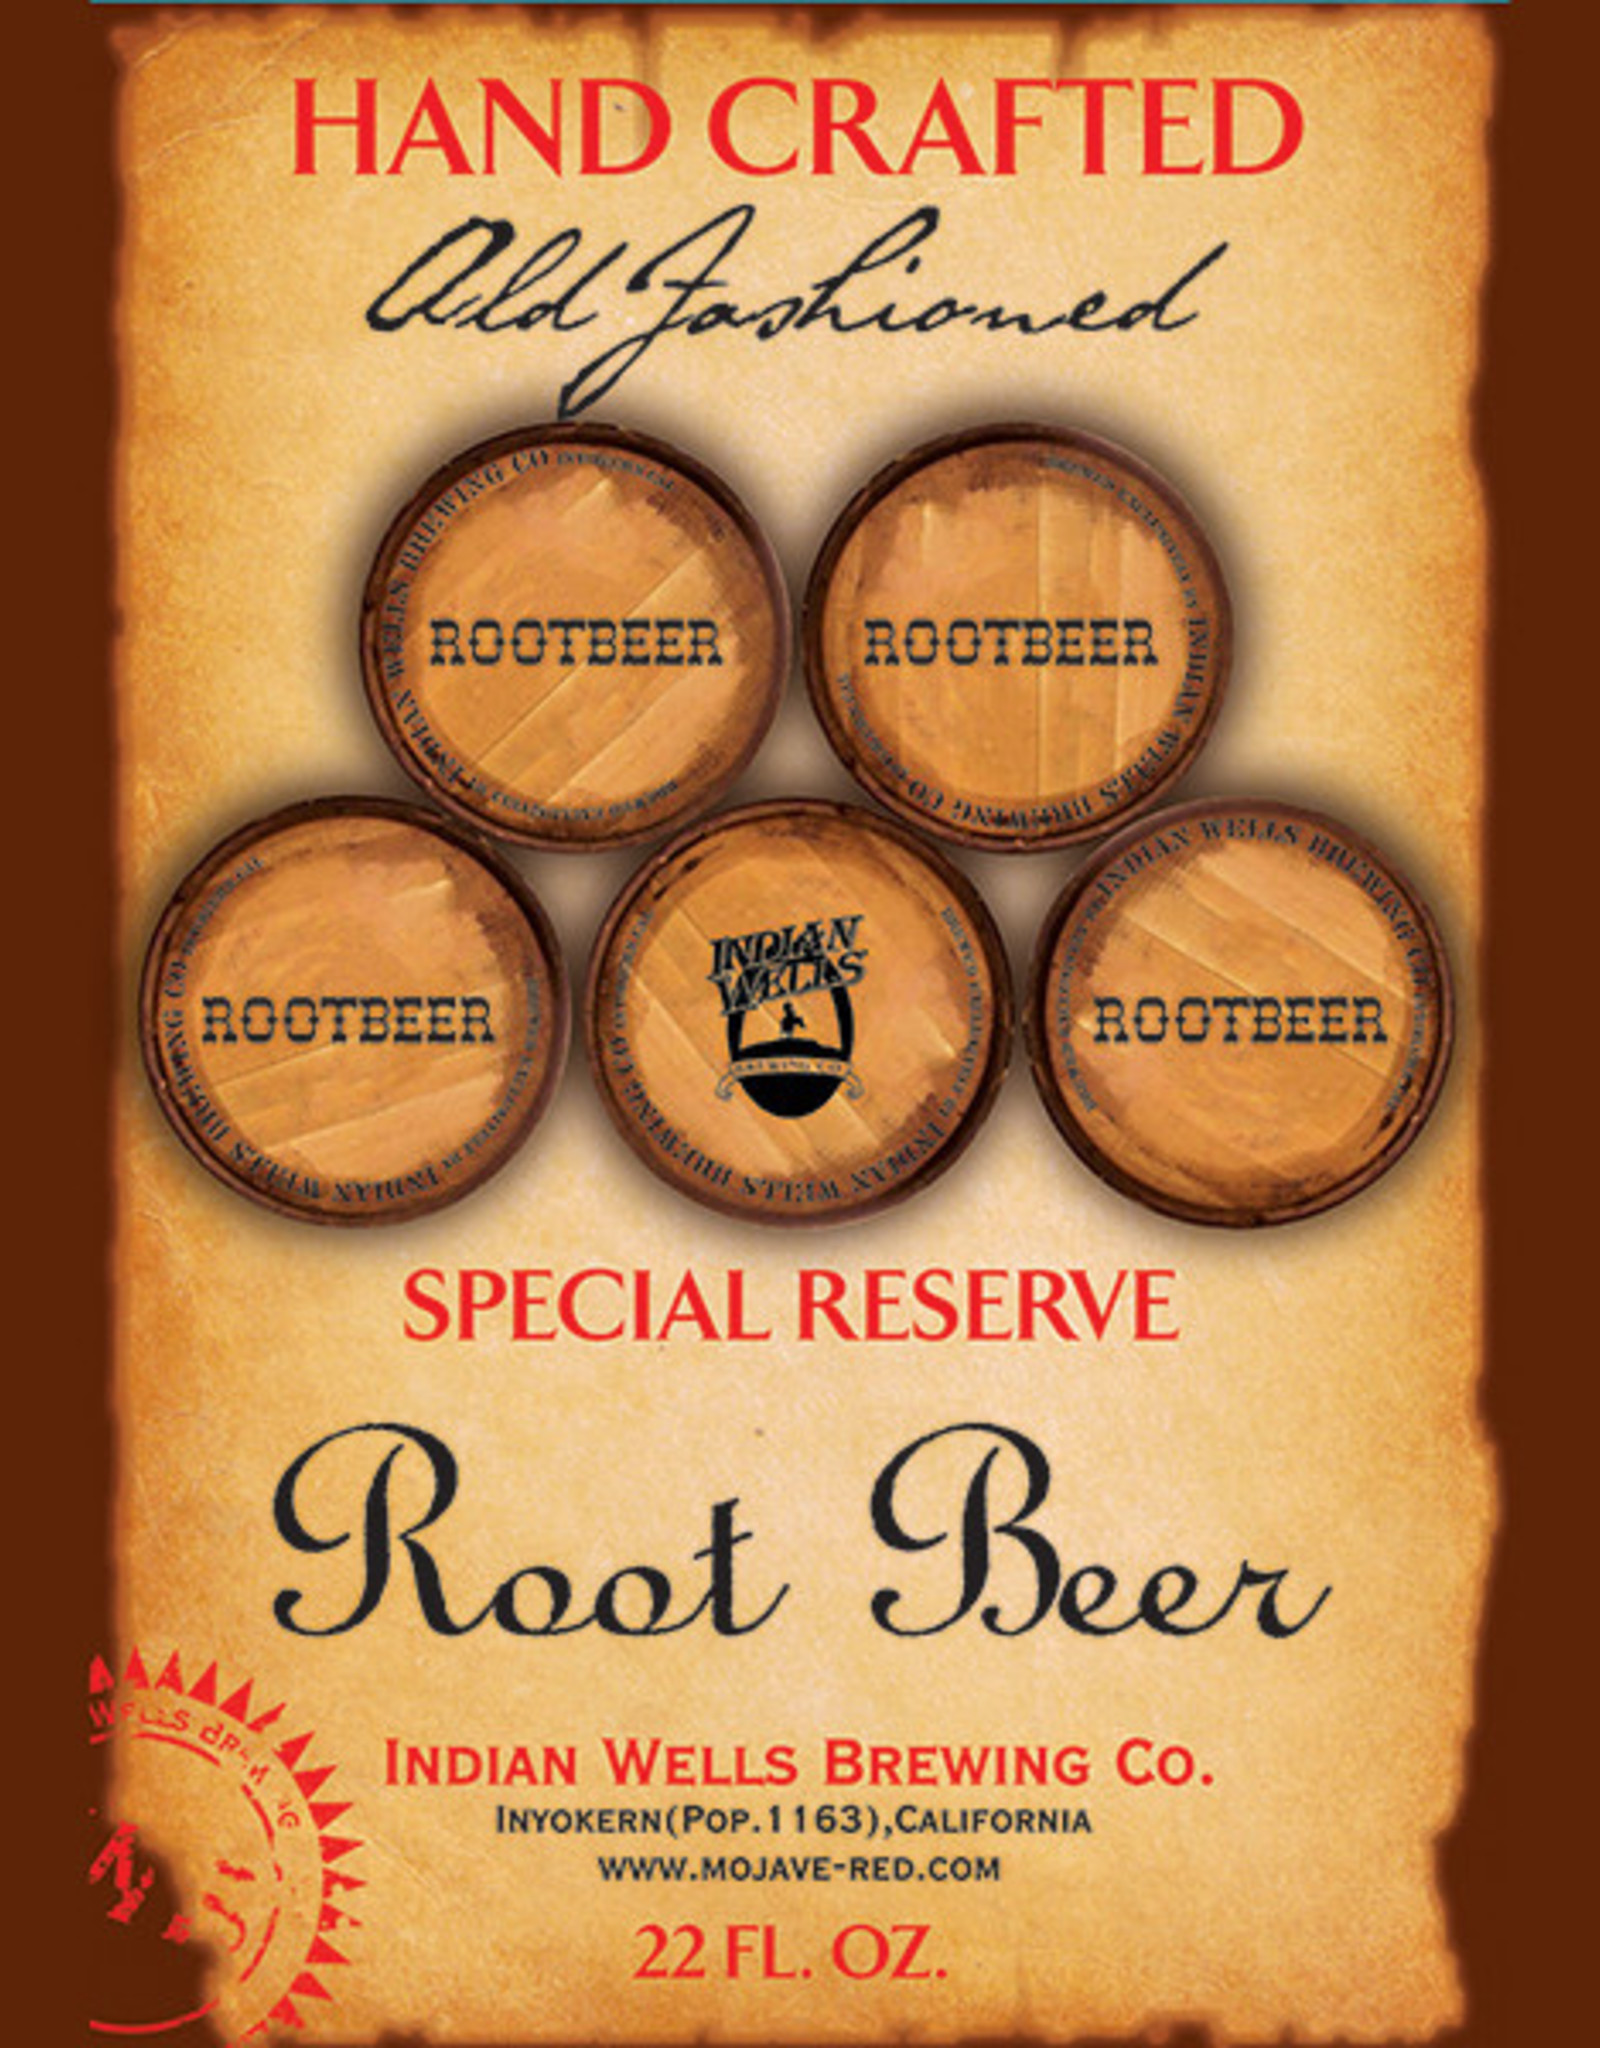 Indian Wells Brewing Company Special Reserve Hand Crafted Root Beer